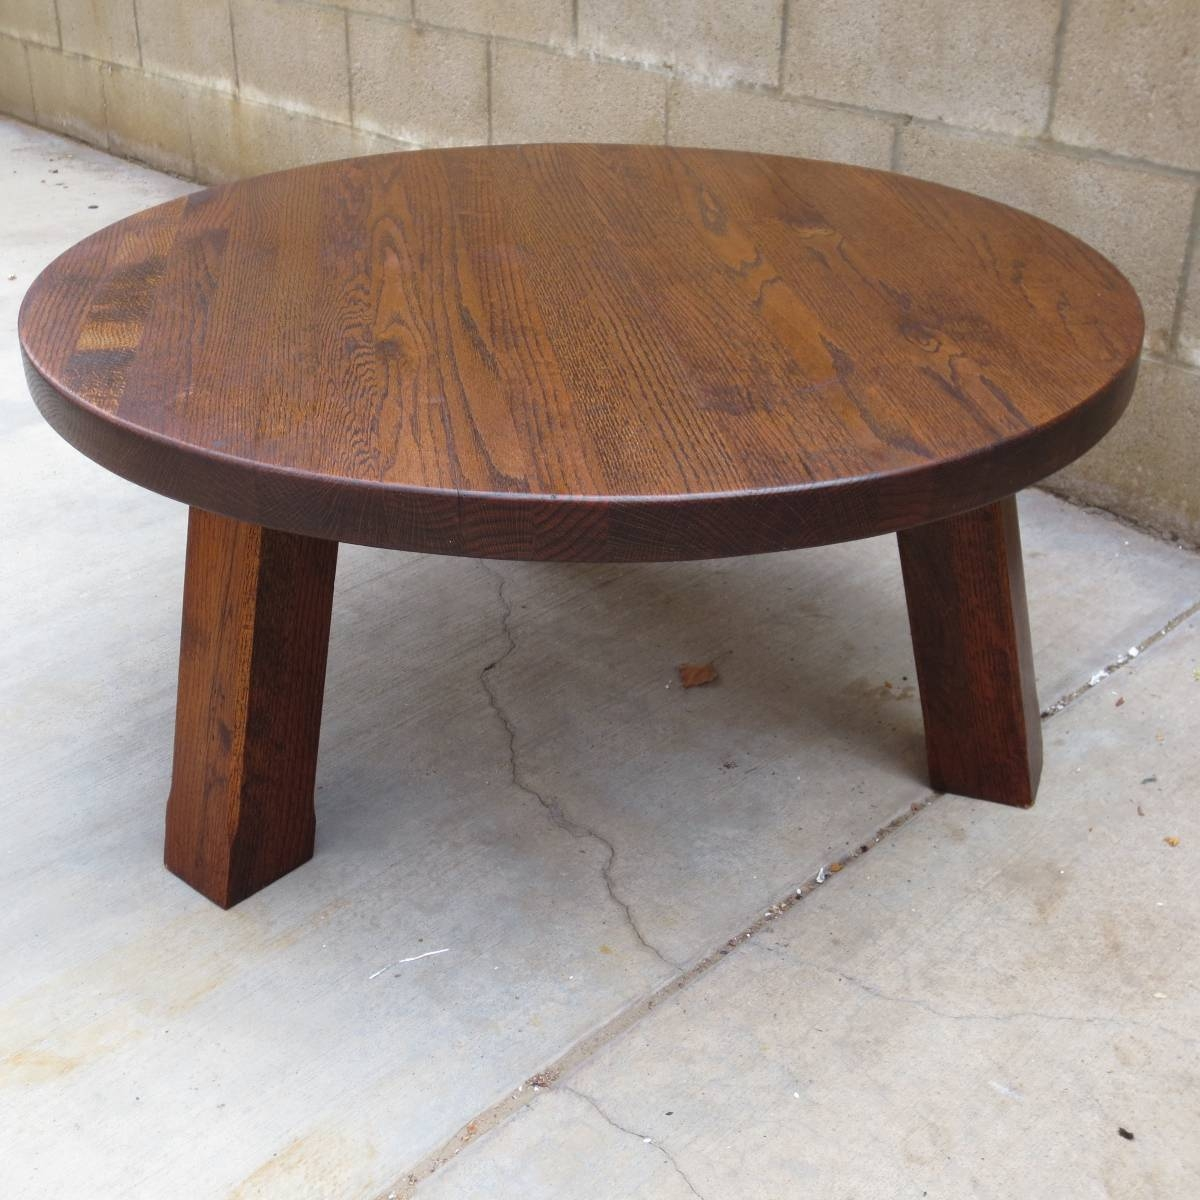 Round Oak Coffee Table With Claw Feet | Coffee Tables Decoration with regard to Round Oak Coffee Tables (Image 24 of 30)